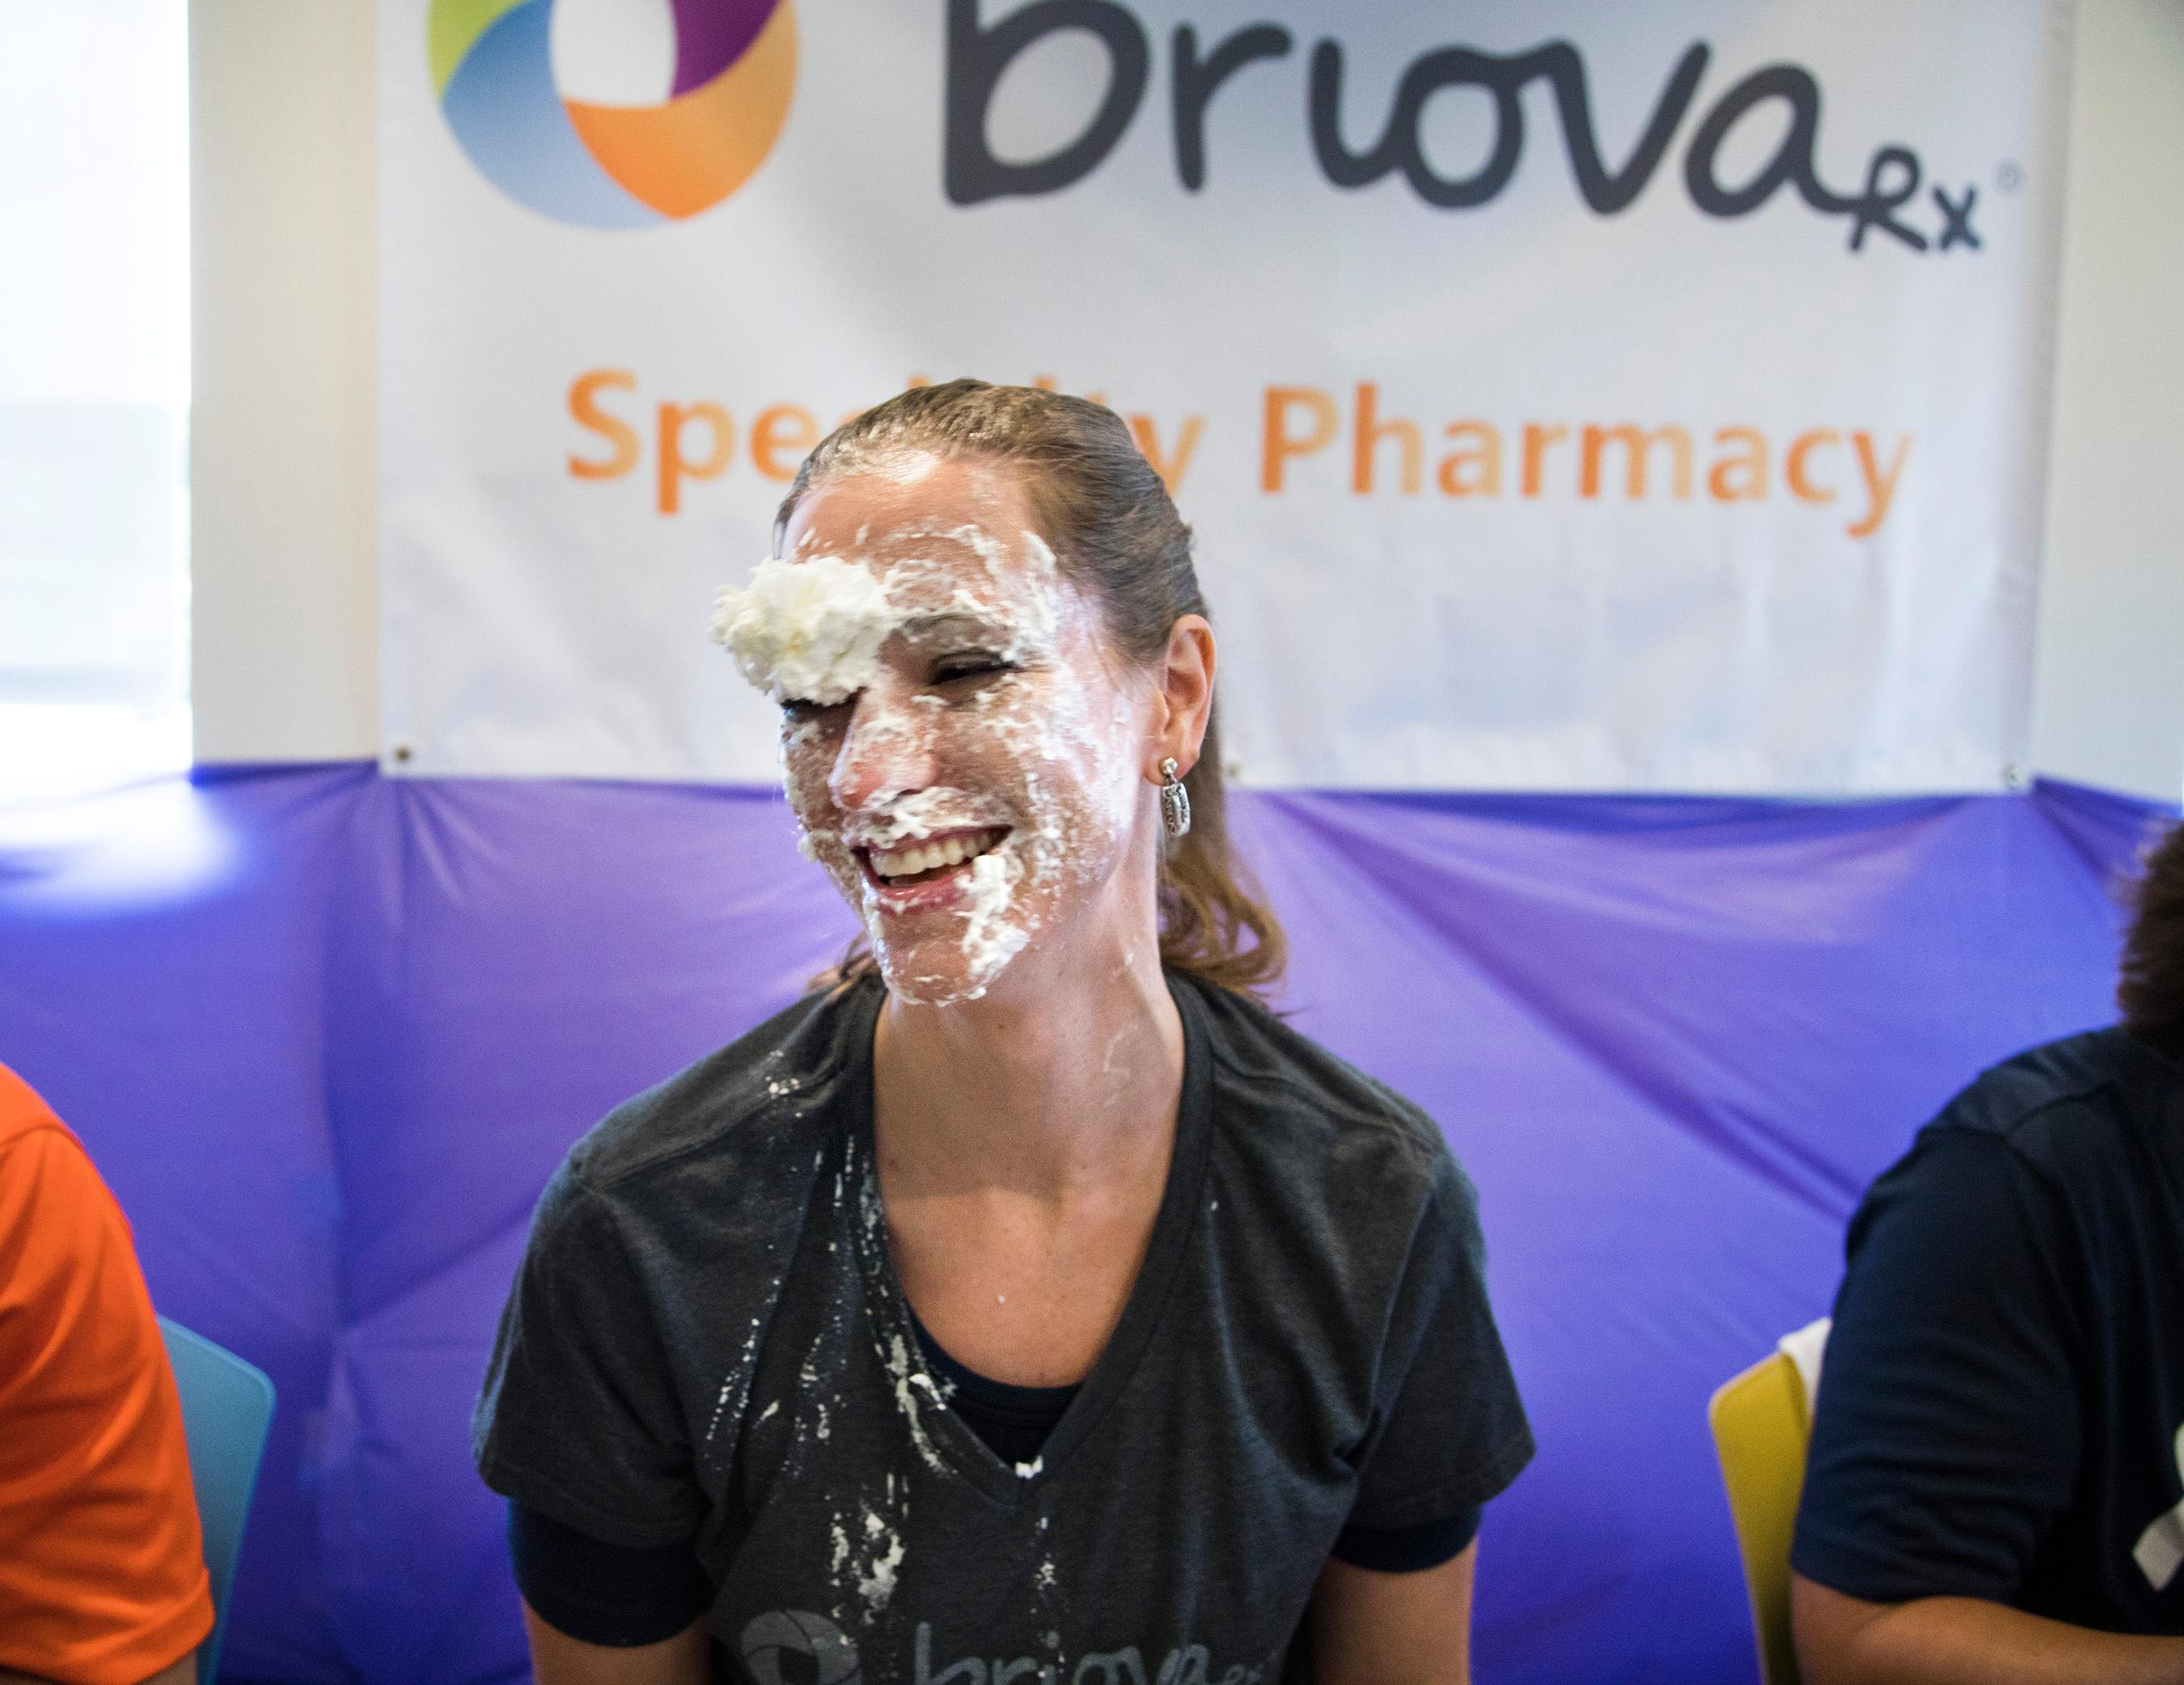 OptumRx Pharmacy Director Jaclyn Latteri is pied in the face Wednesday, July 26, 2017, by employees to raise funds for the Southern Nevada Chapter of the Leukemia & Lymphoma Society and recruit people to participate in its 2017 Light the Night Walk in November. (Photo courtesy of Jeff Scheid)